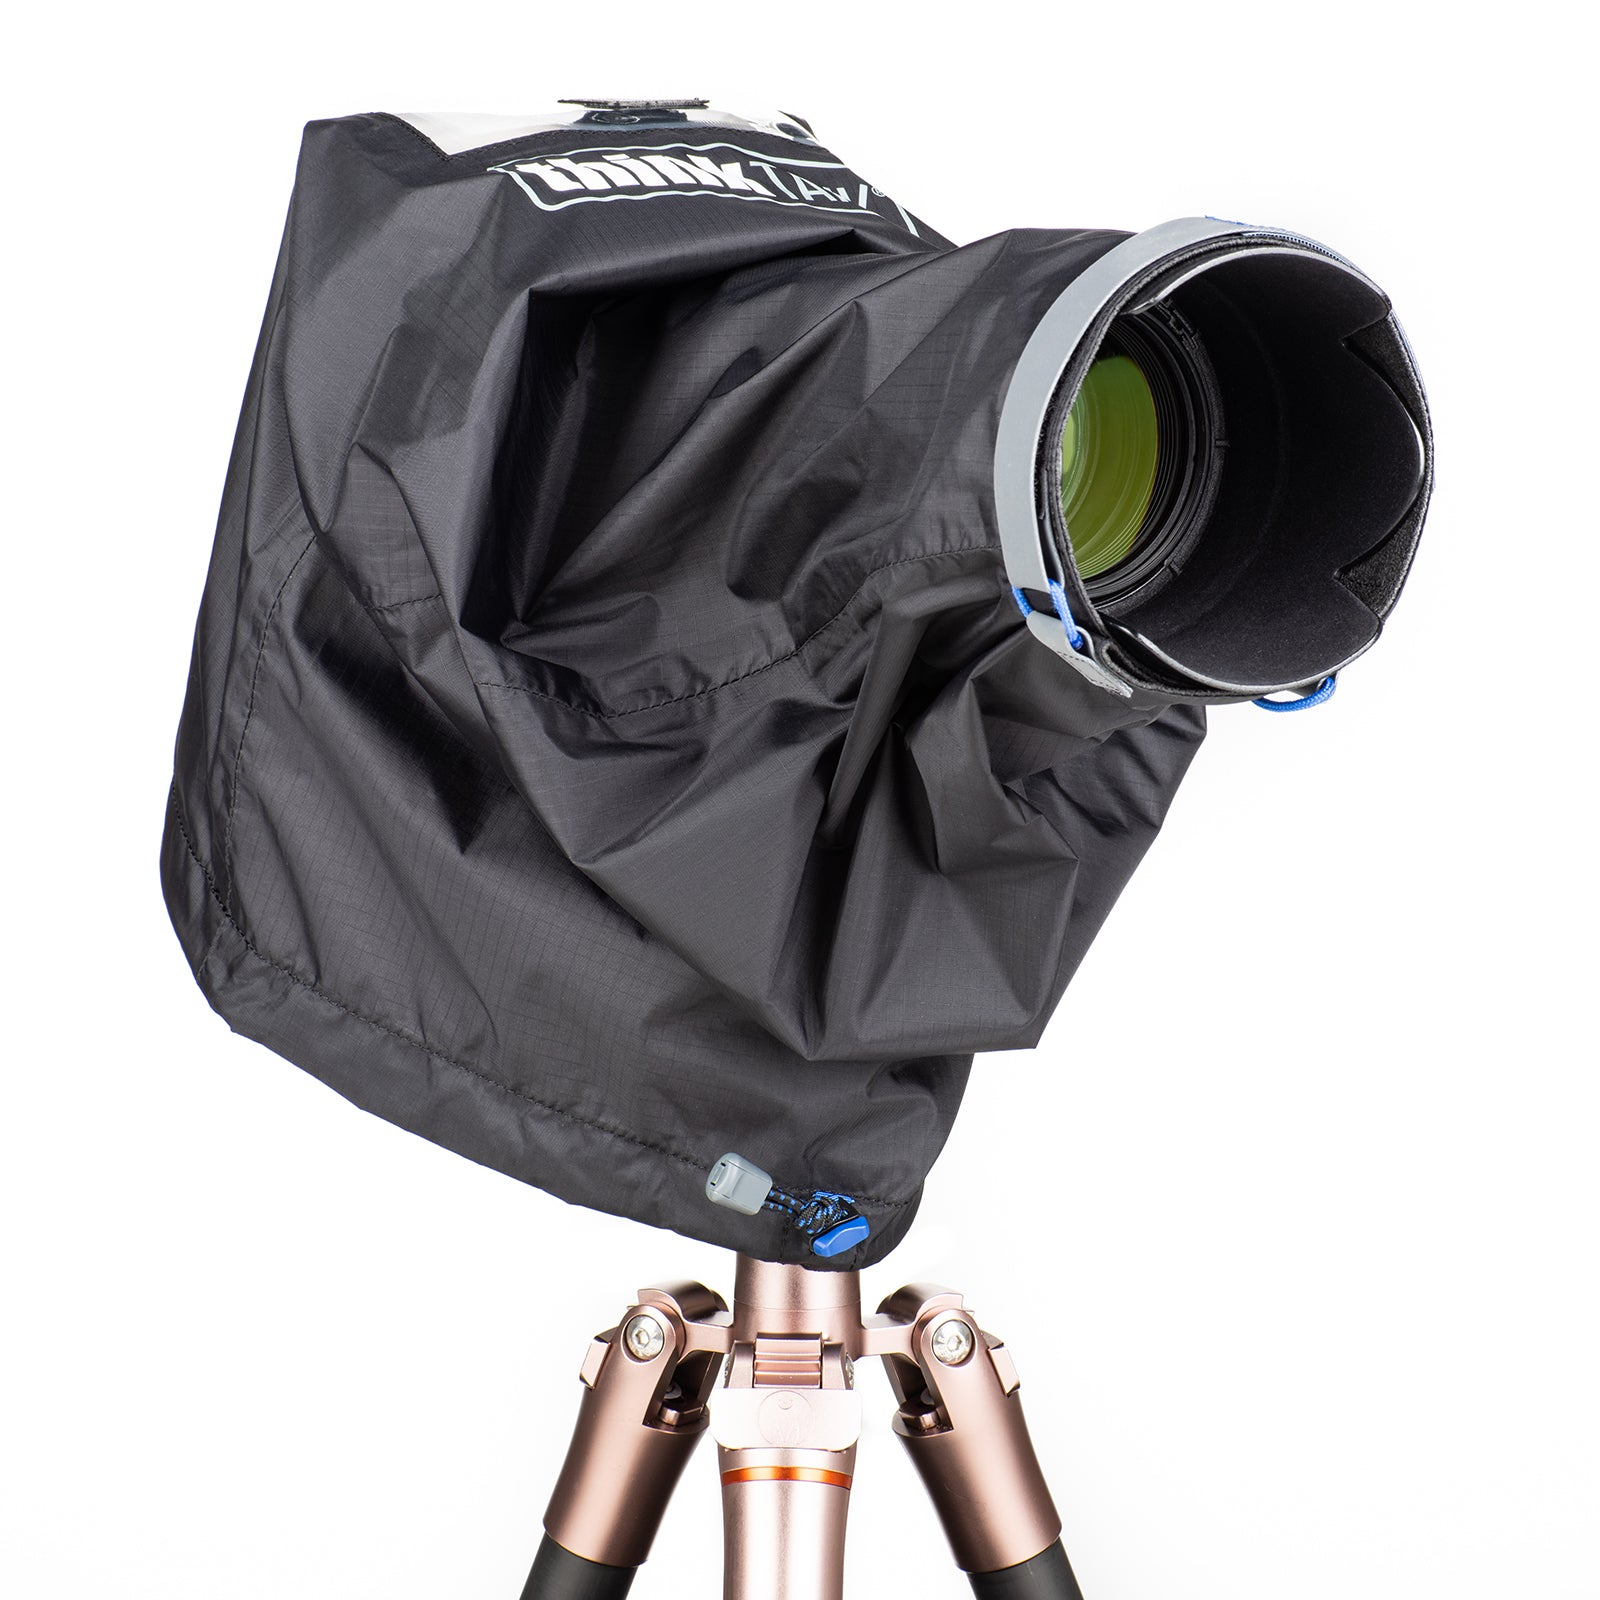 Mountable to tripod or monopod